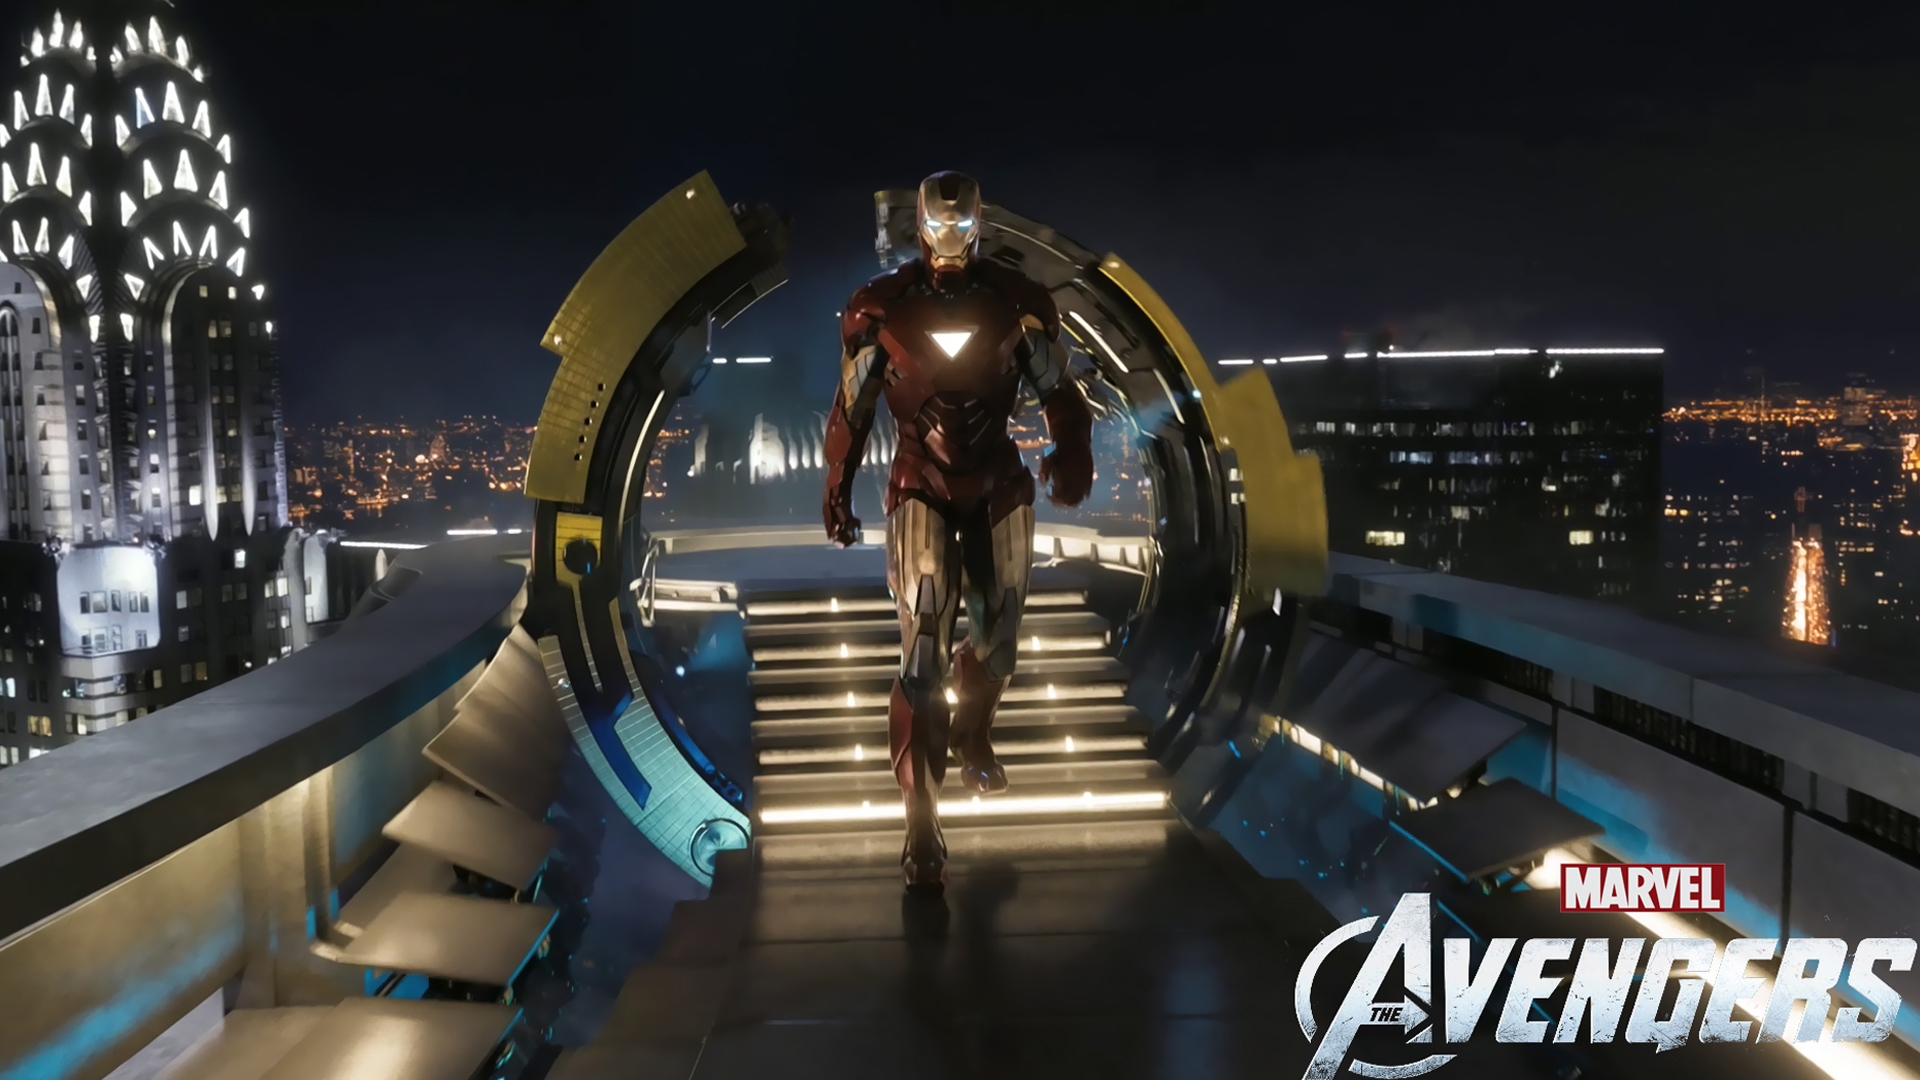 Iron Man In The Avengers Movie Wallpaper